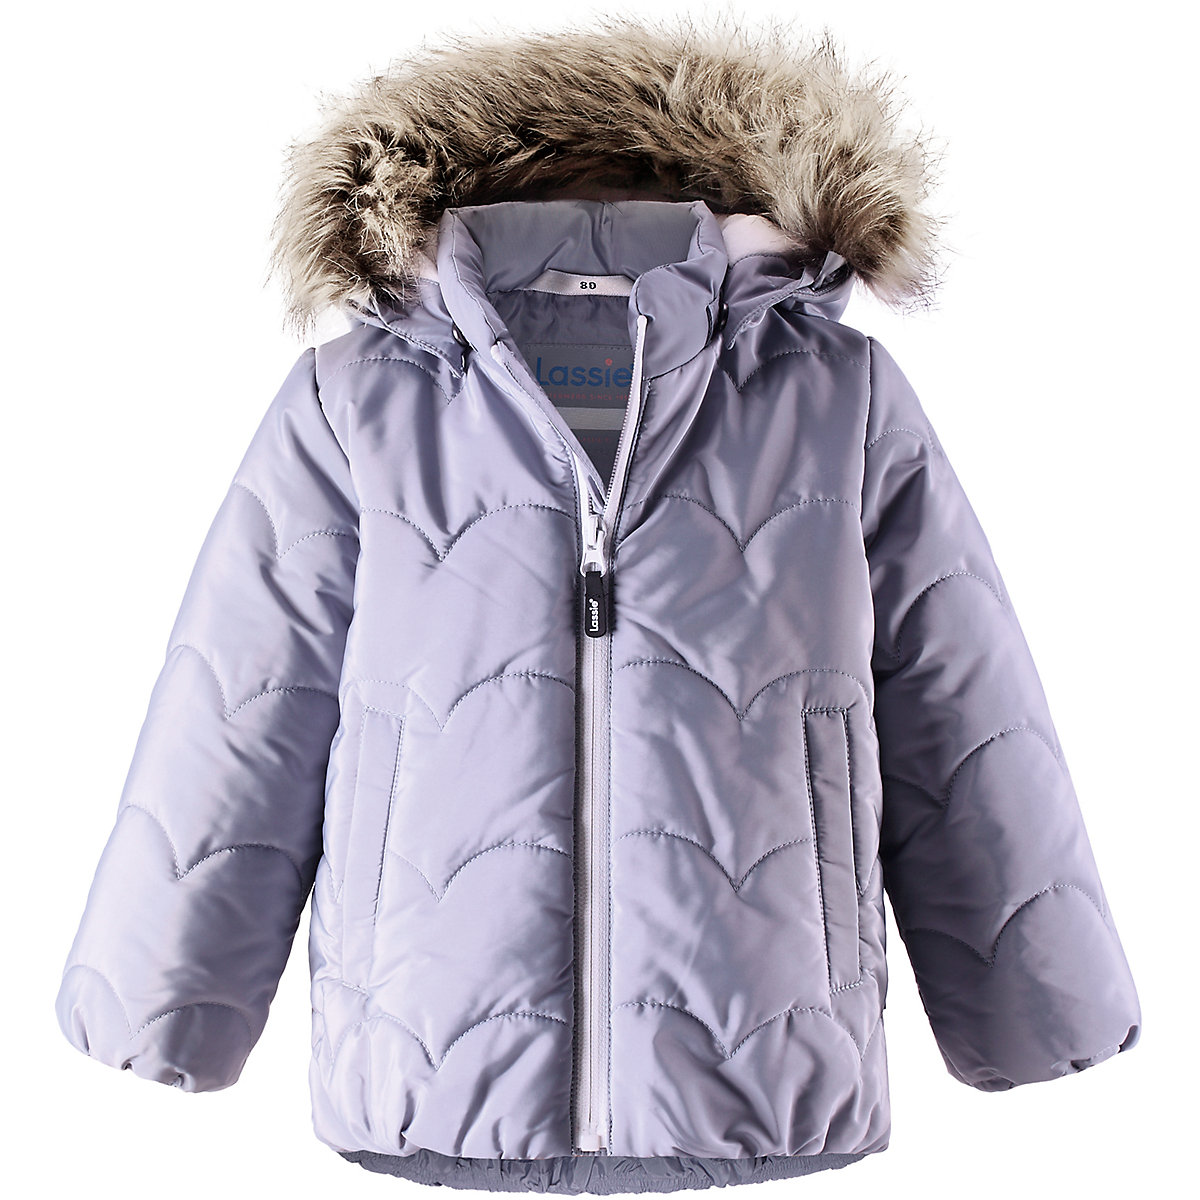 Jackets & Coats LASSIE for boys and girls 8627691 Jacket Coat Denim Cardigan Warm Children clothes Kids men skiing jackets warm waterproof windproof cotton snowboarding jacket shooting camping travel climbing skating hiking ski coat